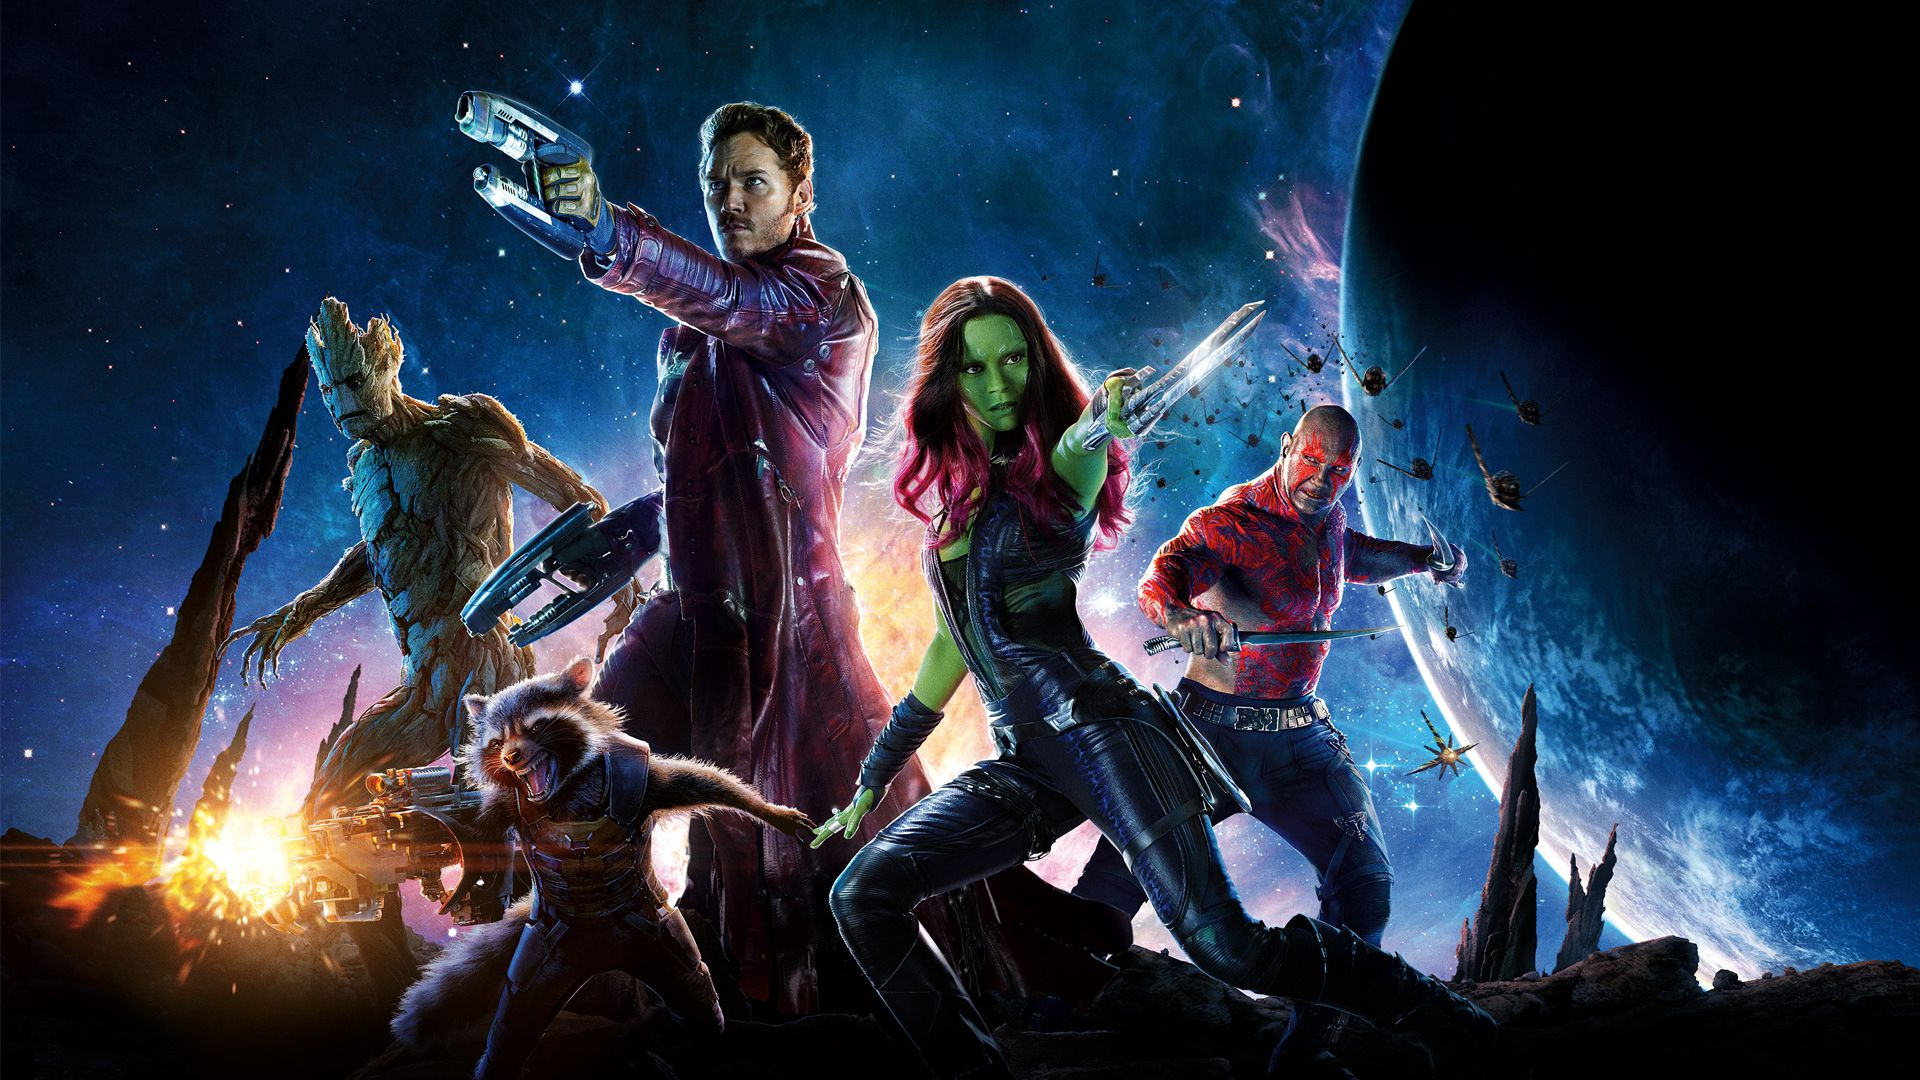 Guardians of the Galaxy 2 UK release date, trailer and cast – everything you need to know